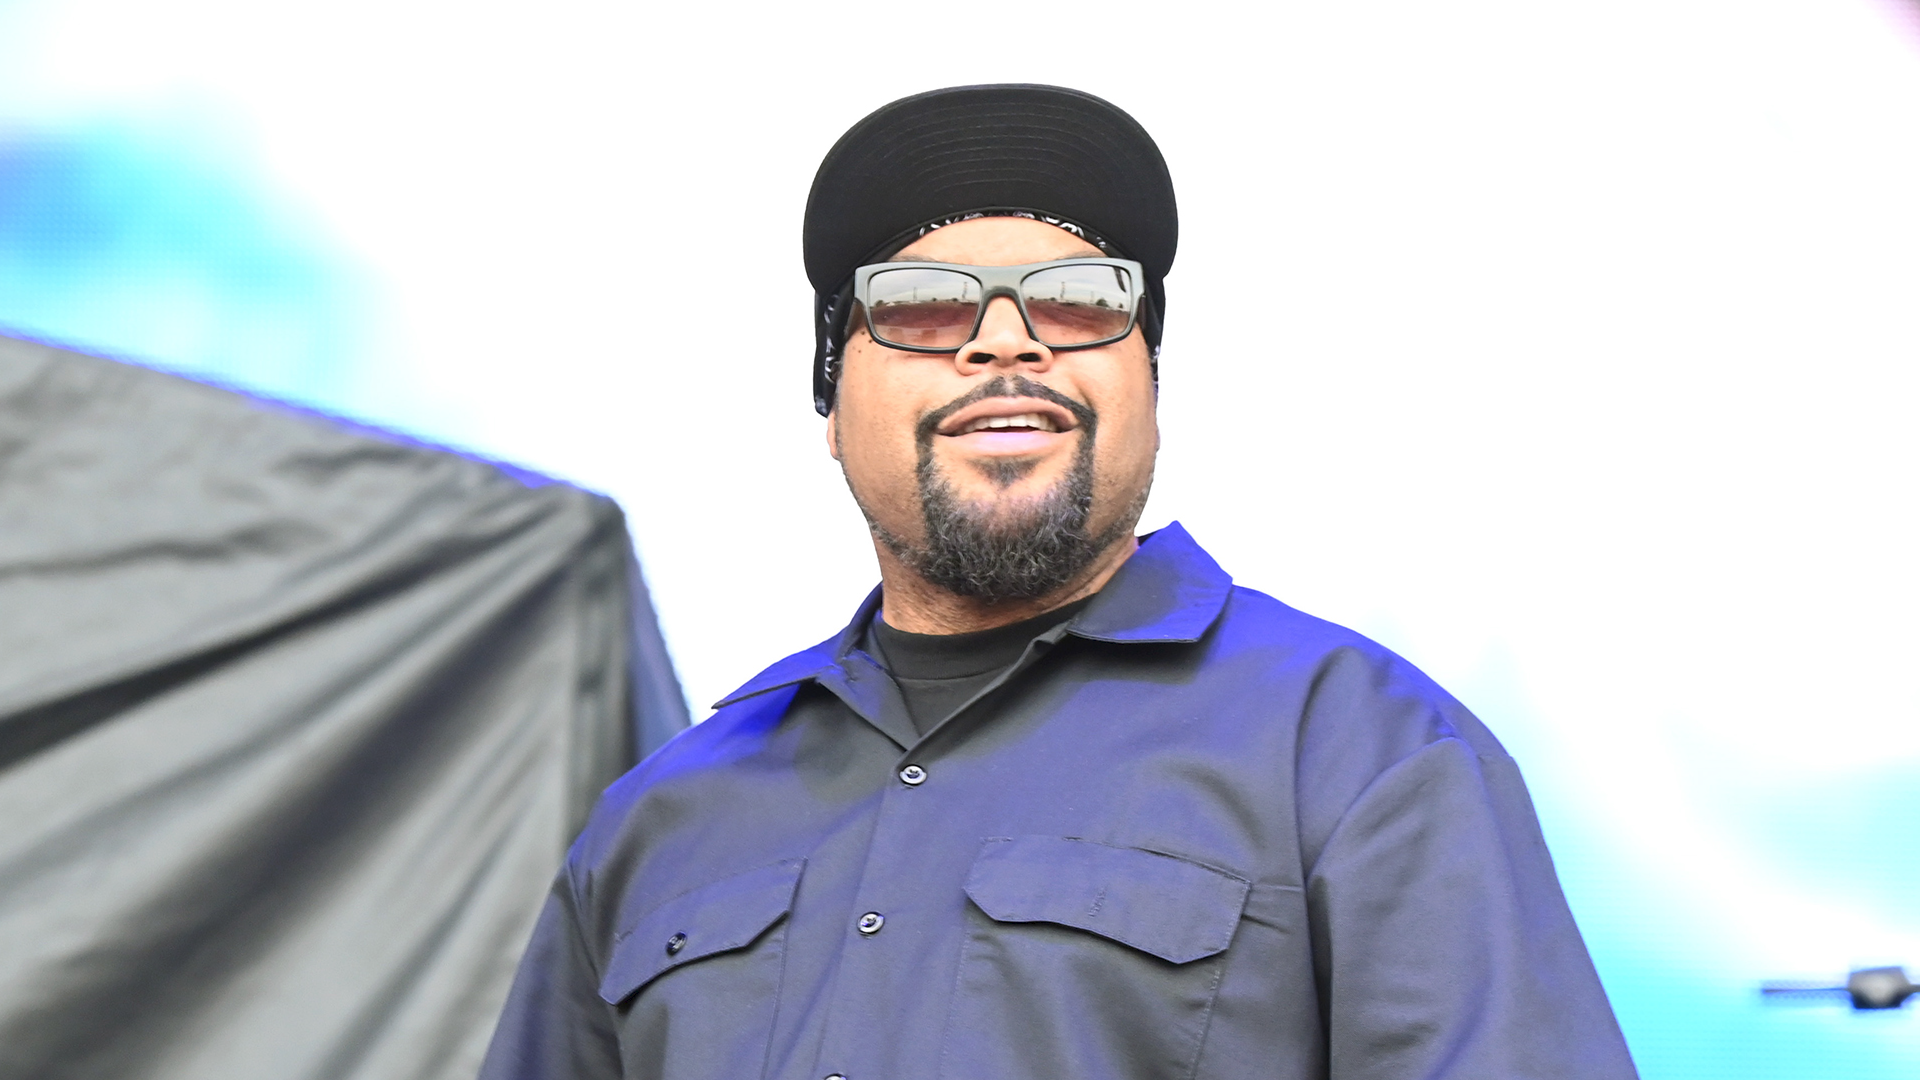 Ice Cube defends working with Trump by saying he's trying to 'make a deal with whoever is in power'